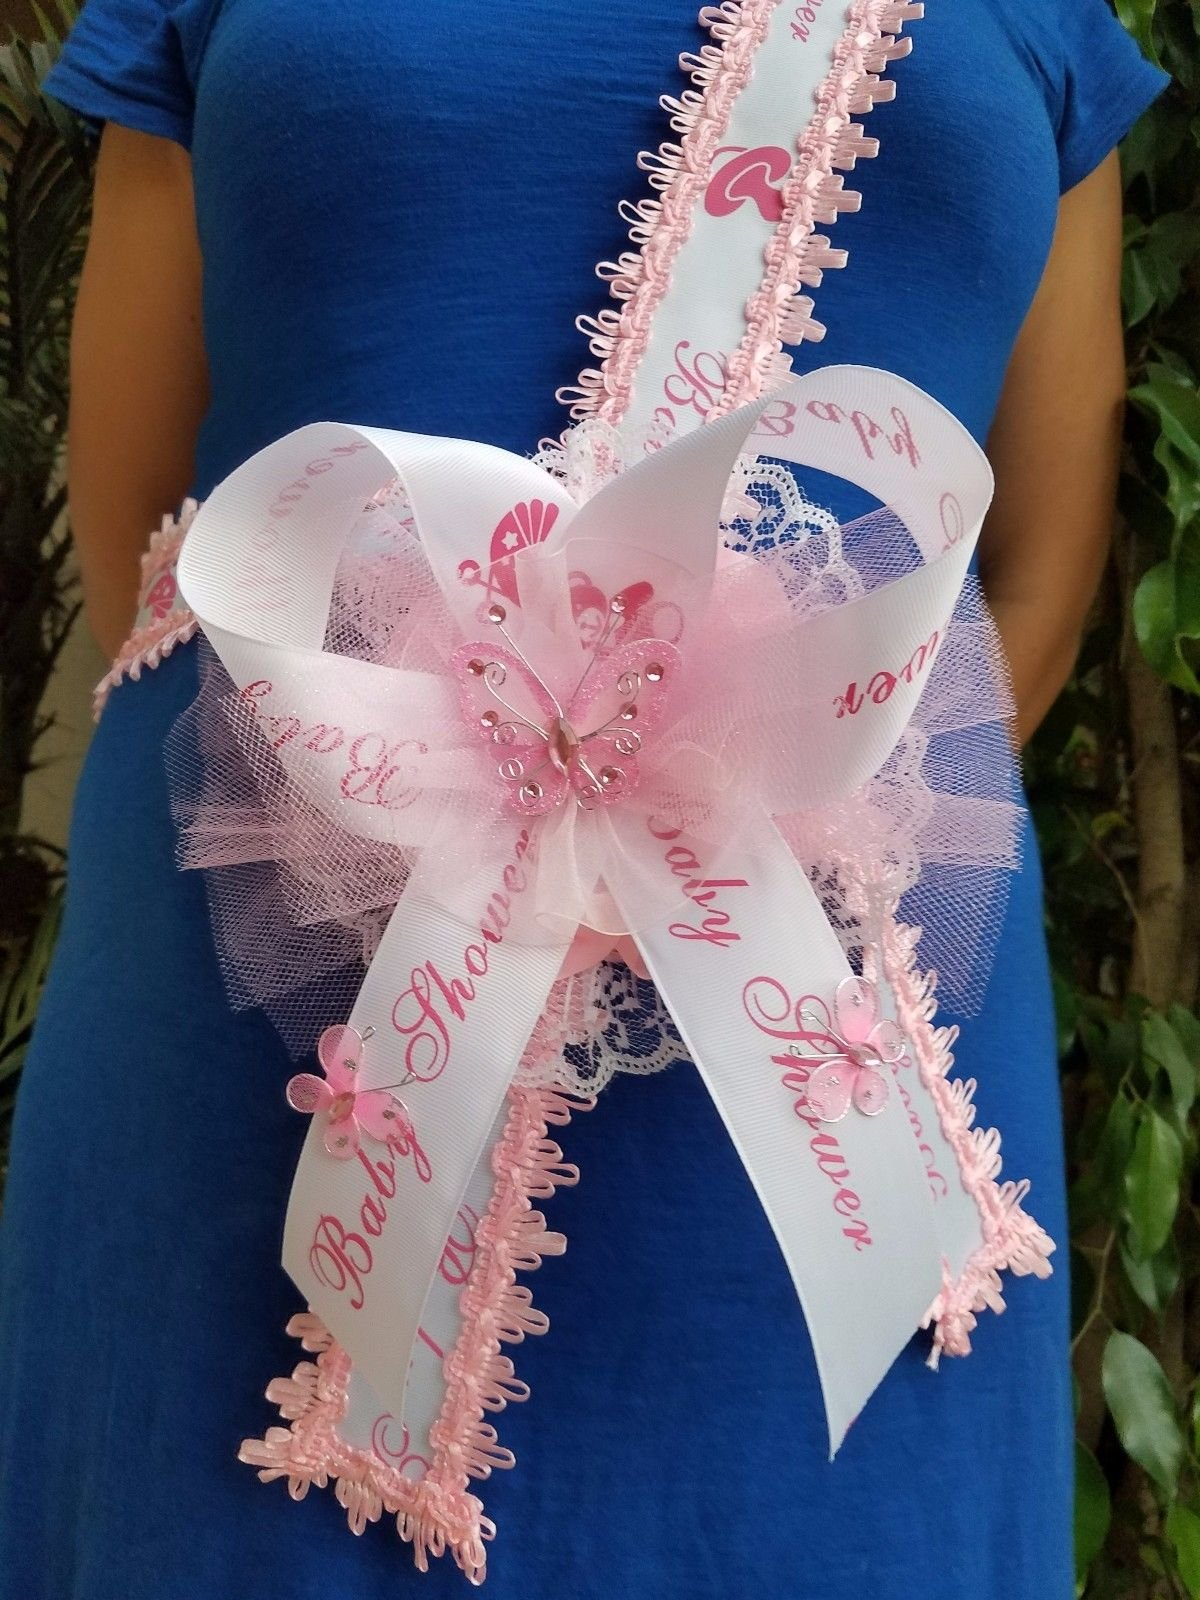 Baby Shower Mom To Be It's a Girl Sash Pink With Butterflies Ribbon and Corsage by PRODUCT 789 (Image #1)